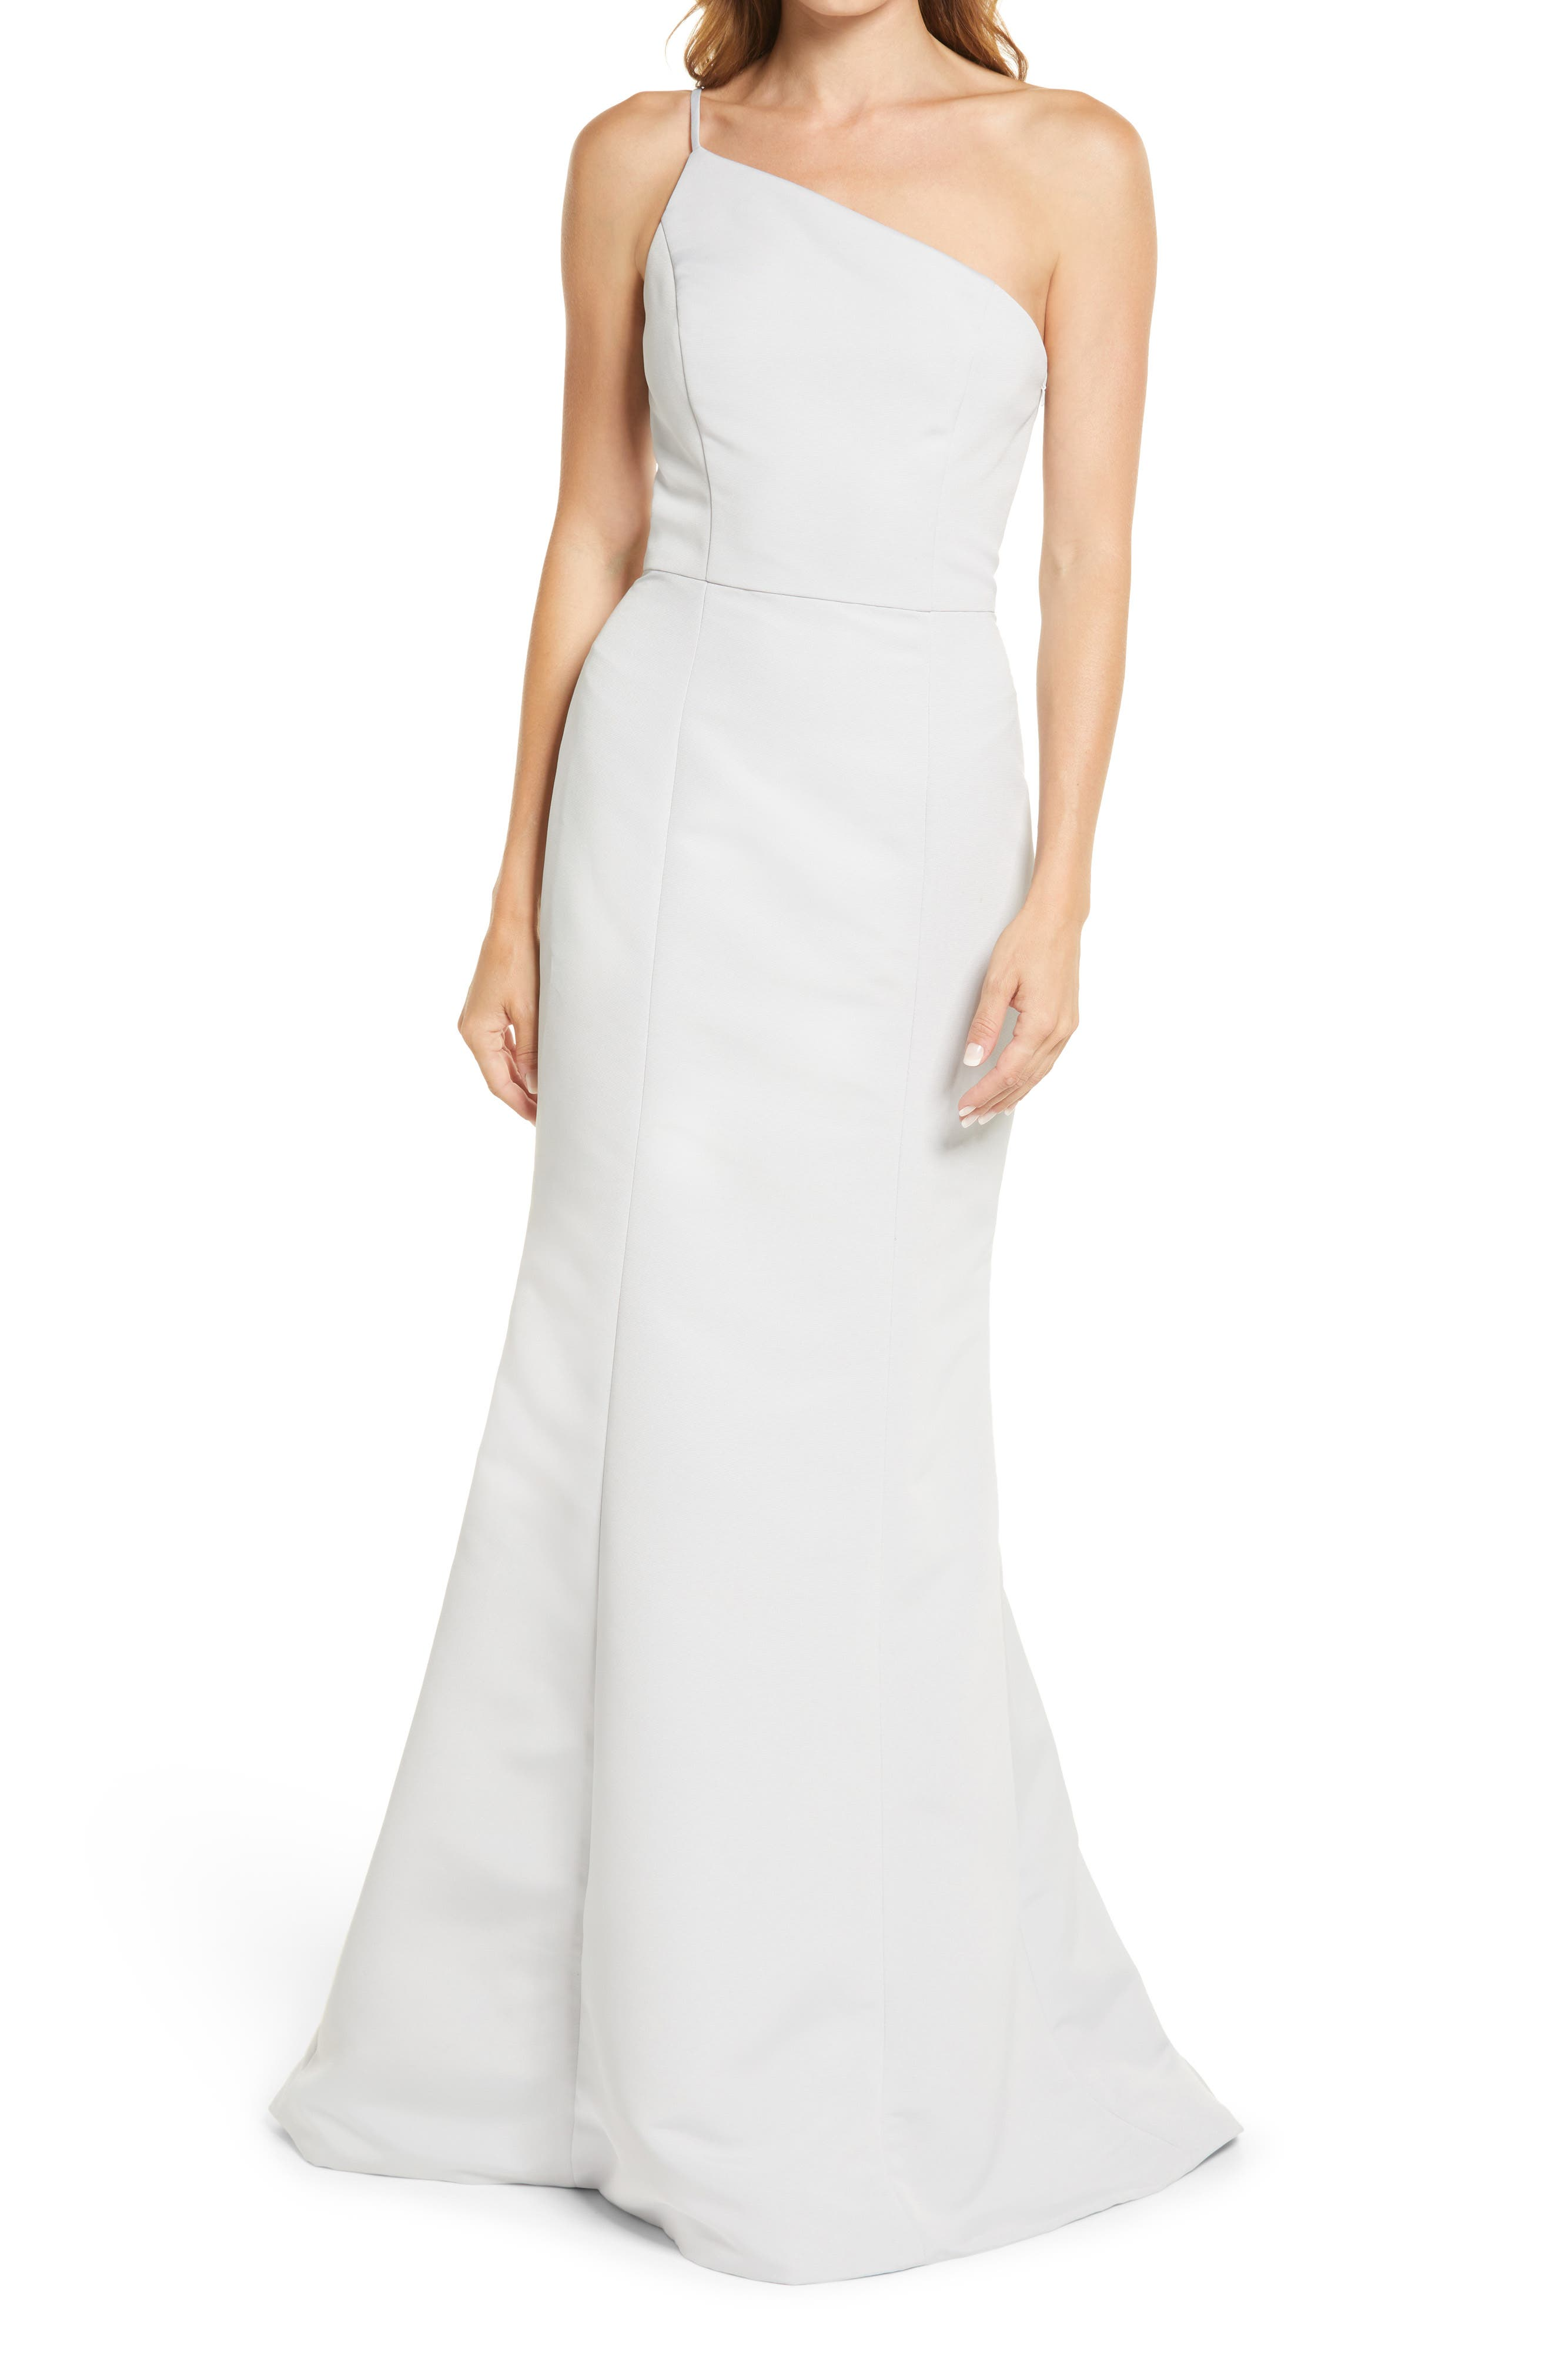 One-Shoulder Faille Mermaid Gown